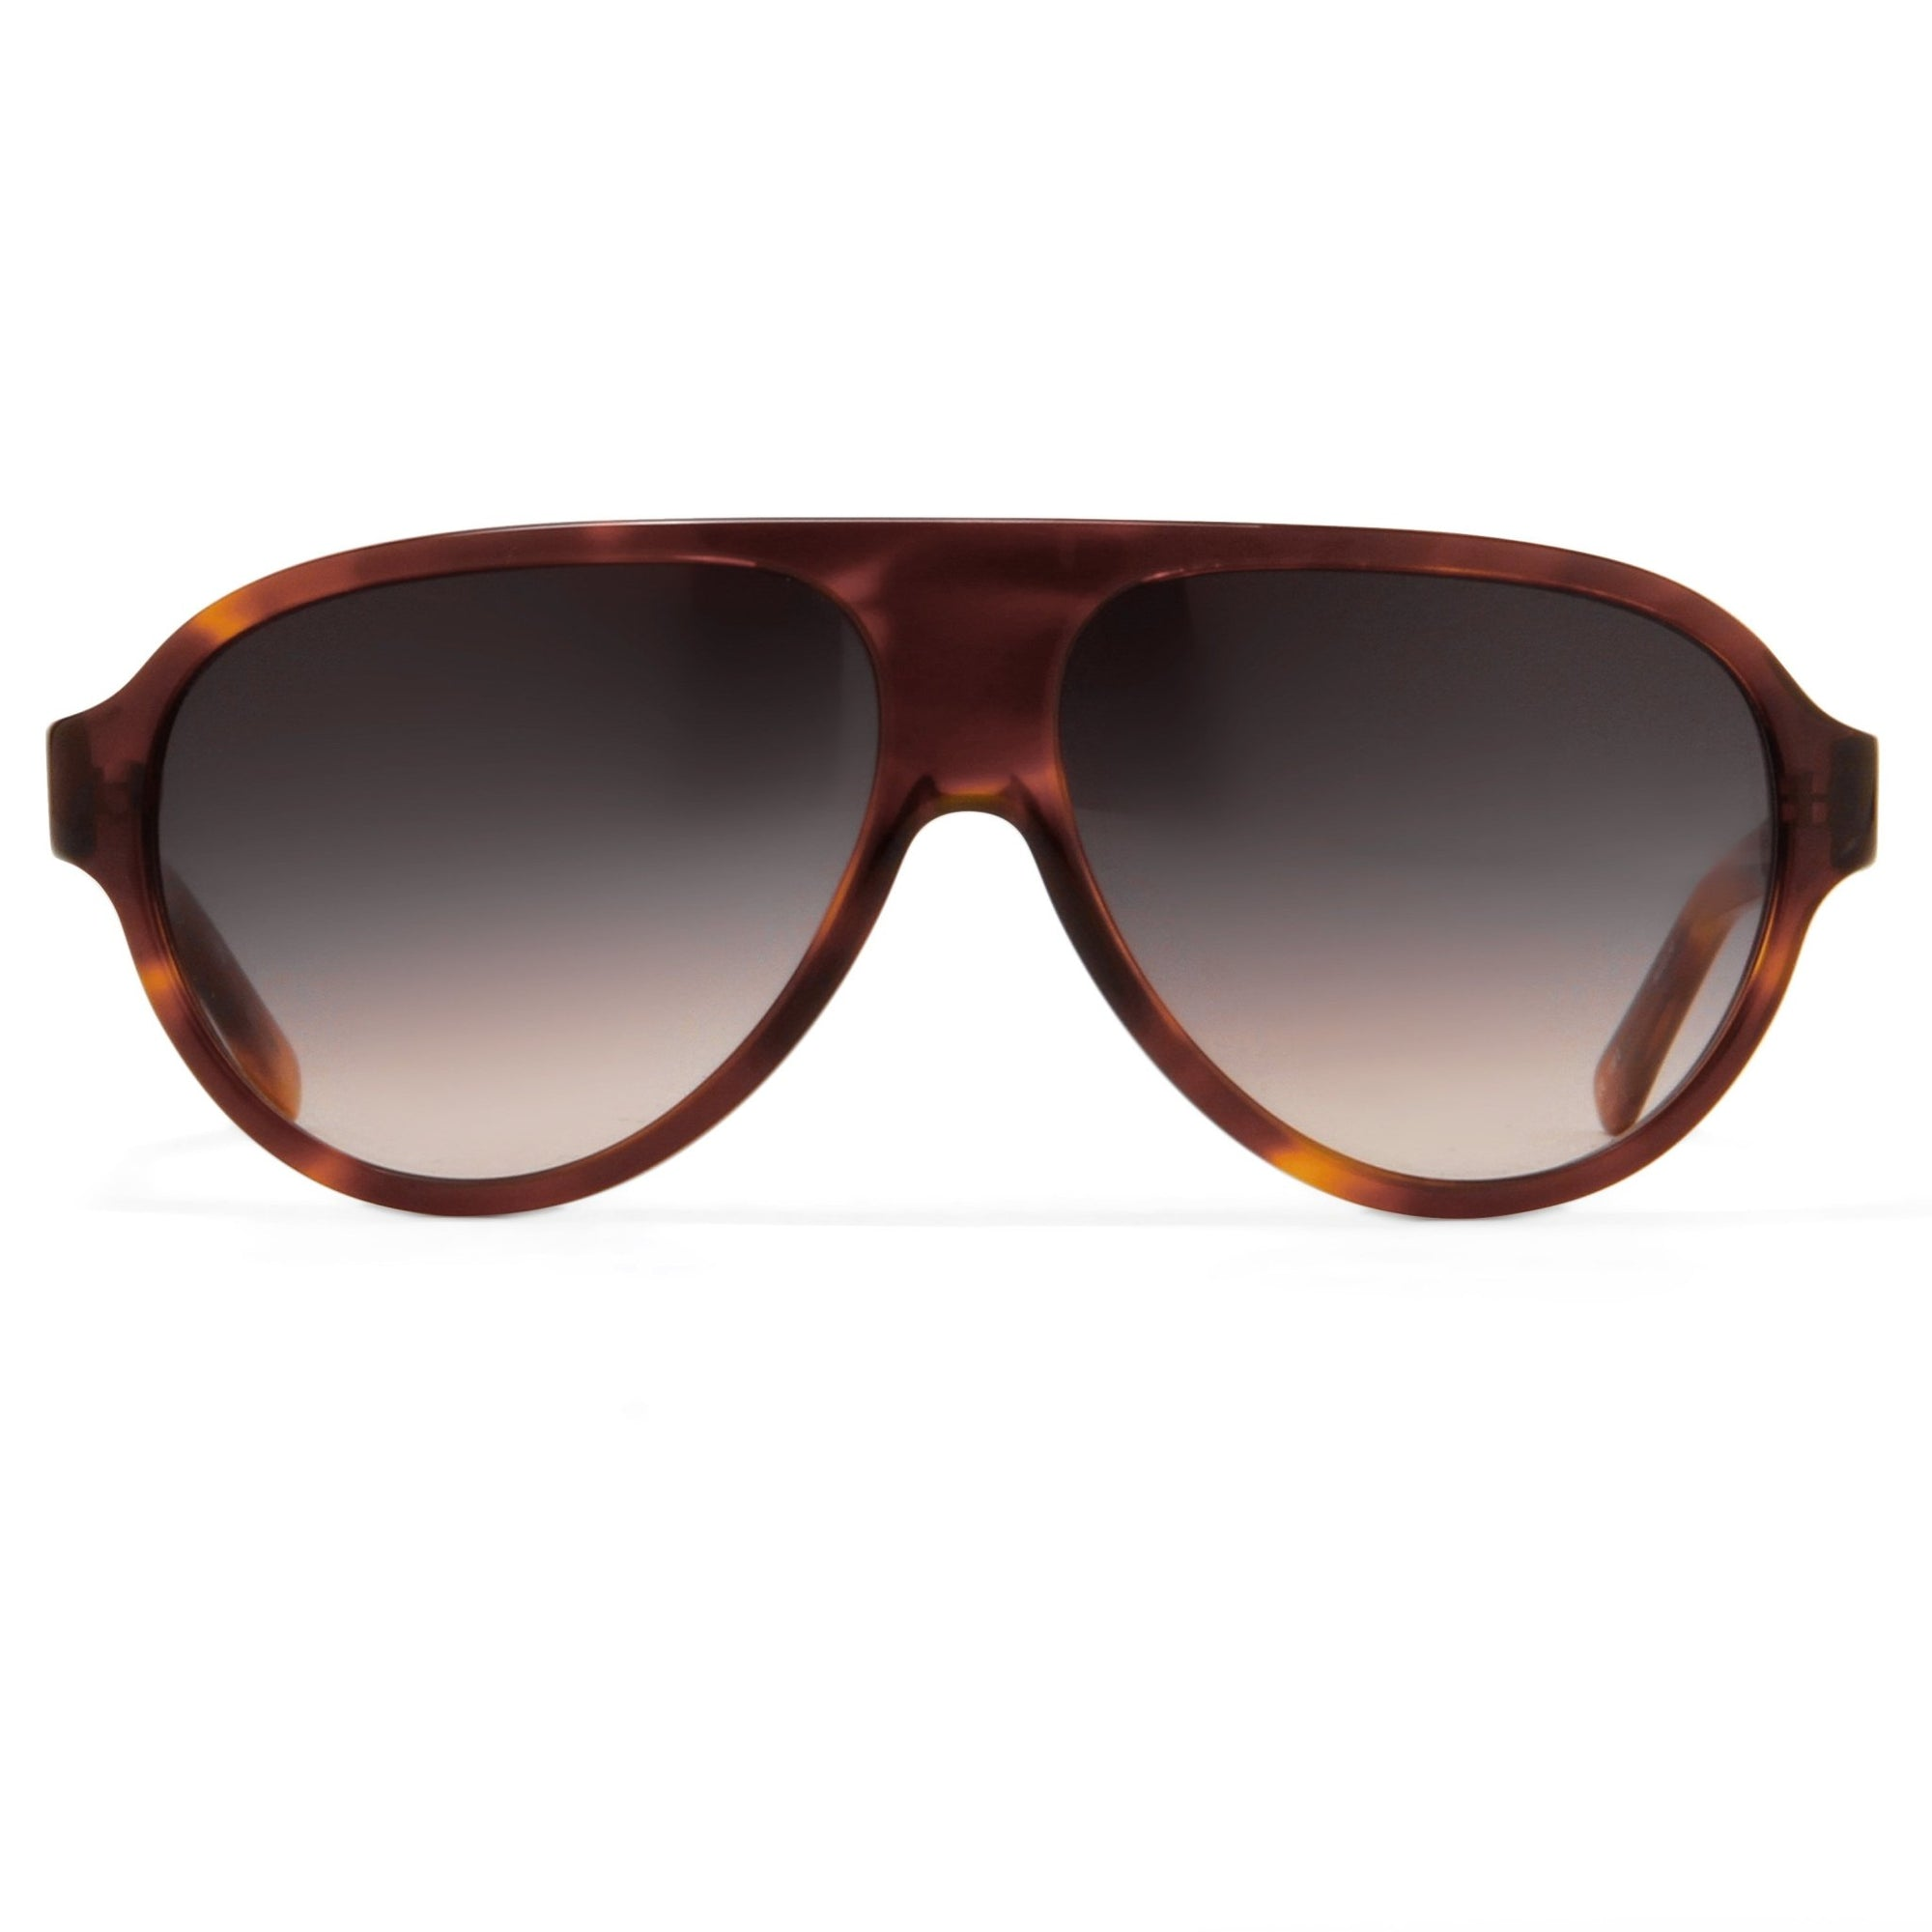 Prabal Gurung Sunglasses Unisex Aviator Tortoise Shell Acetate CAT2 Grey Gradient Lenses PG16C2SUN - Watches & Crystals